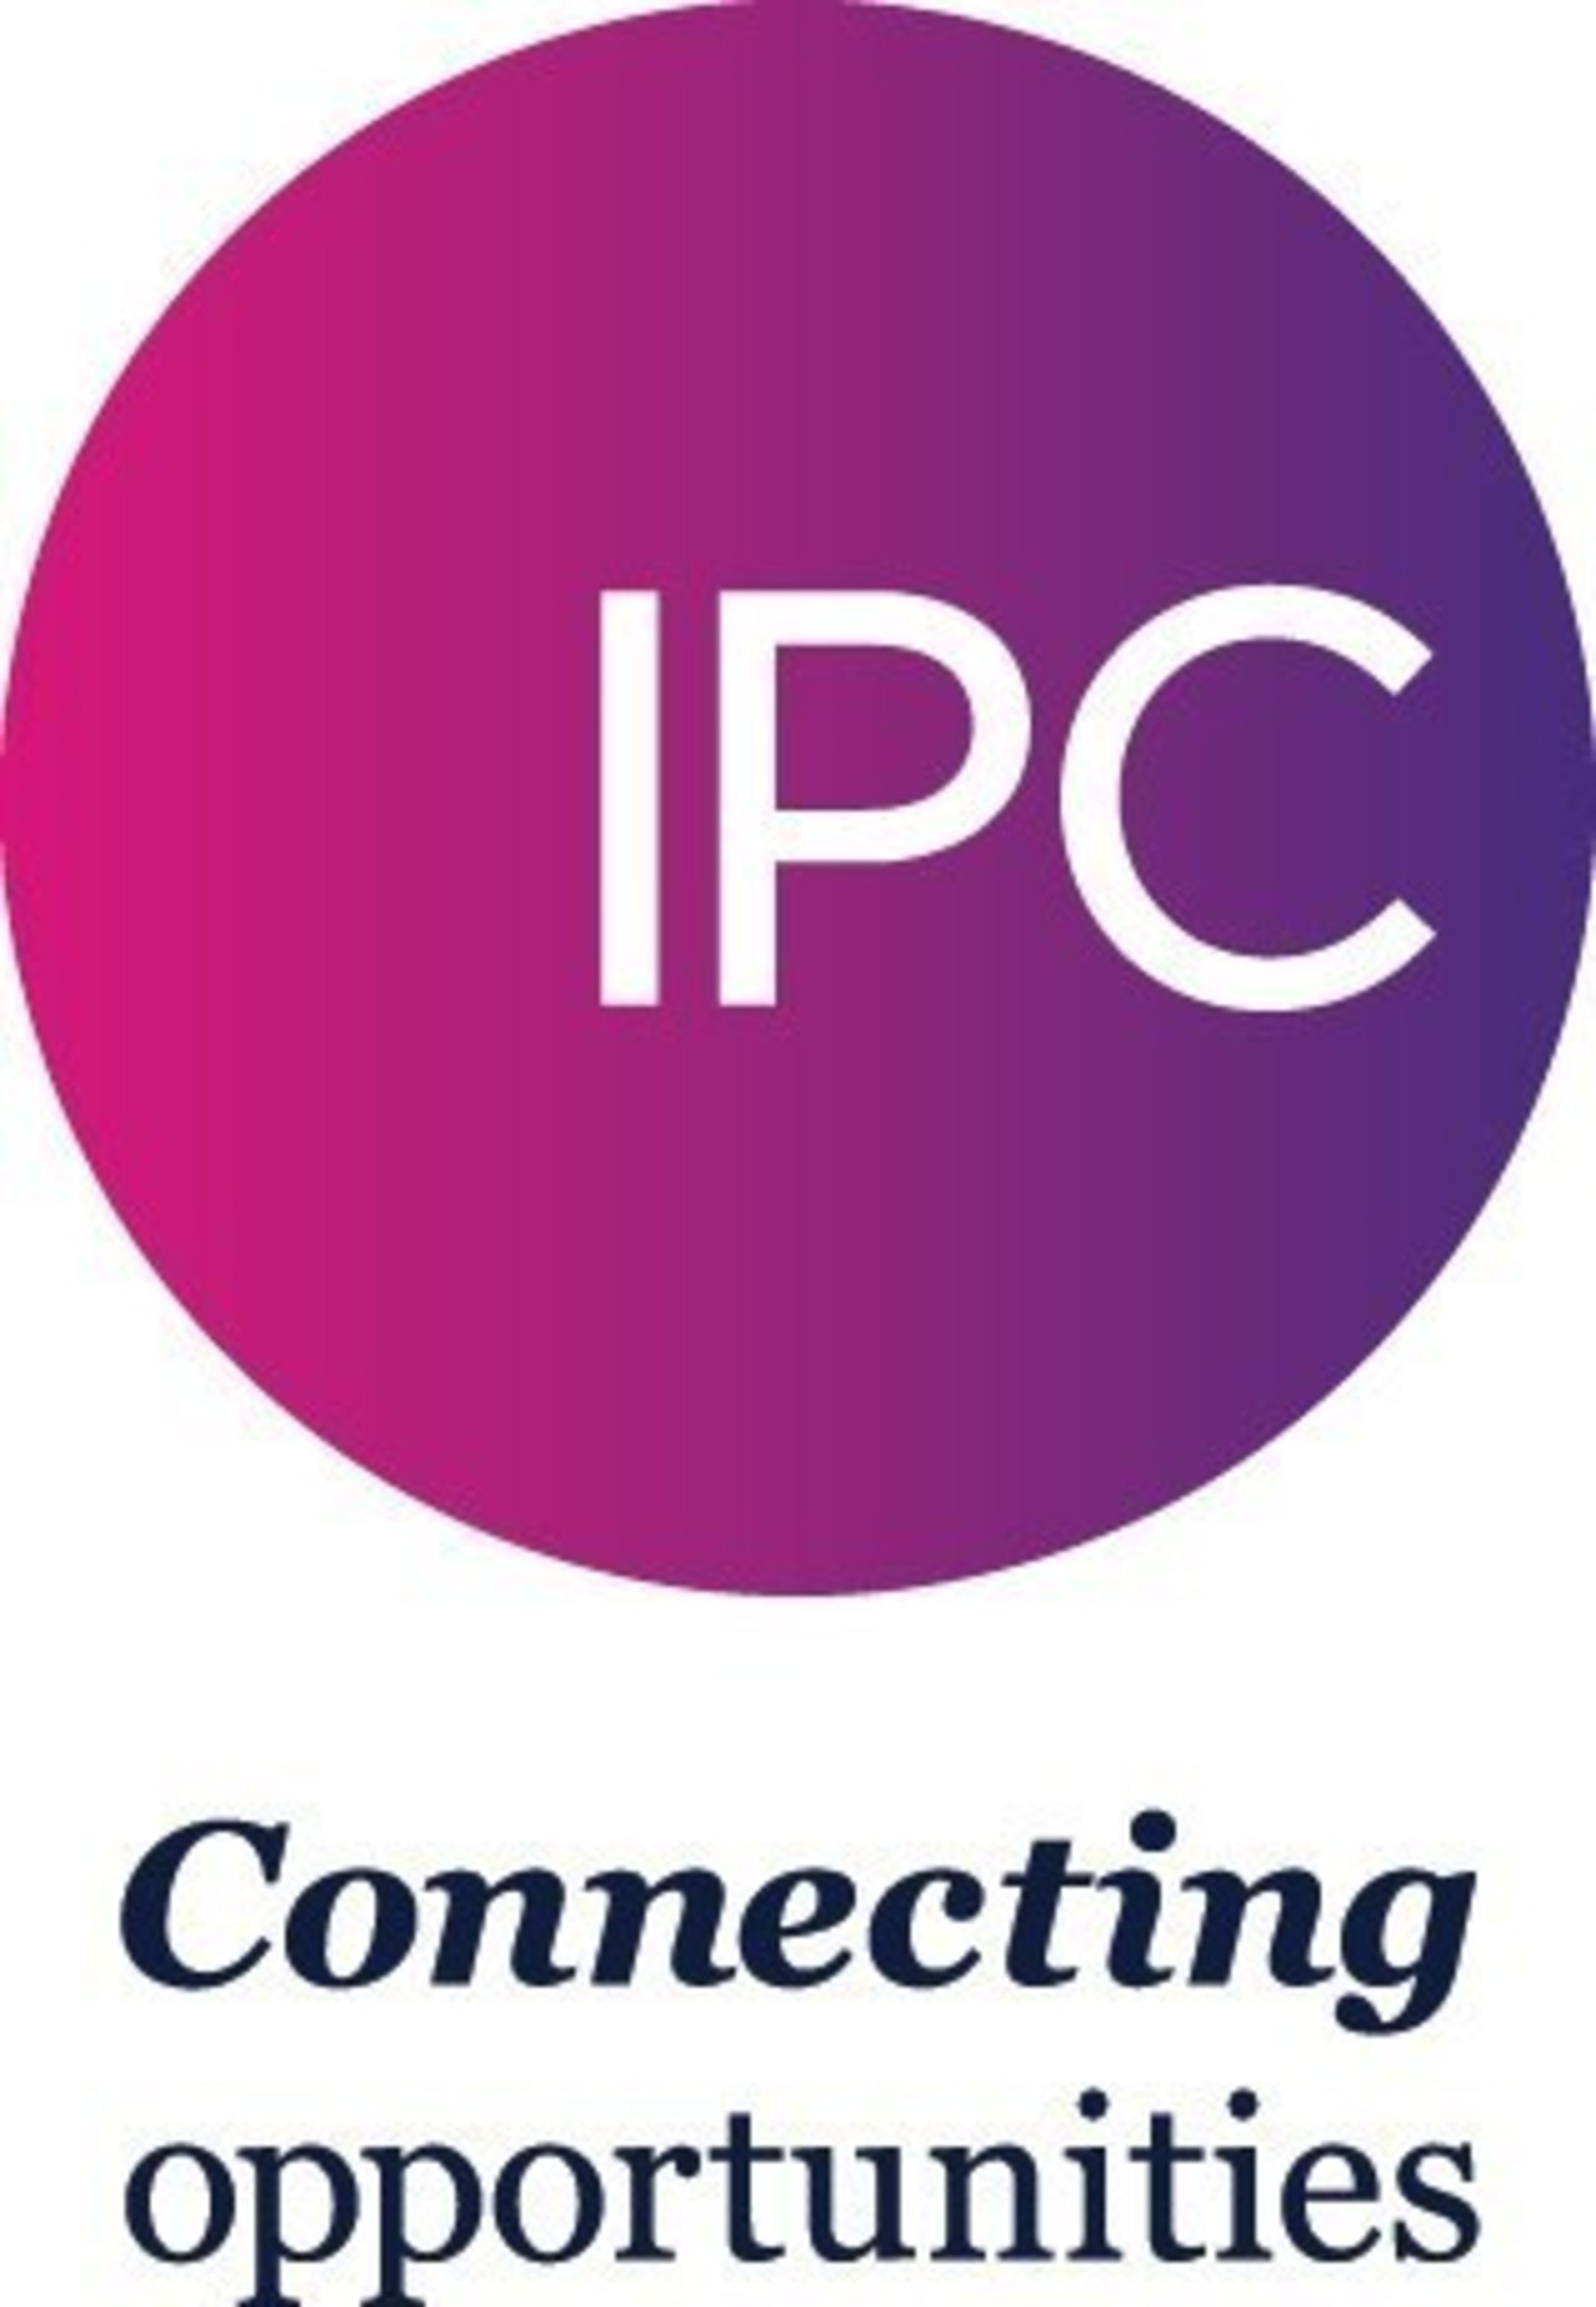 IPC's new logo